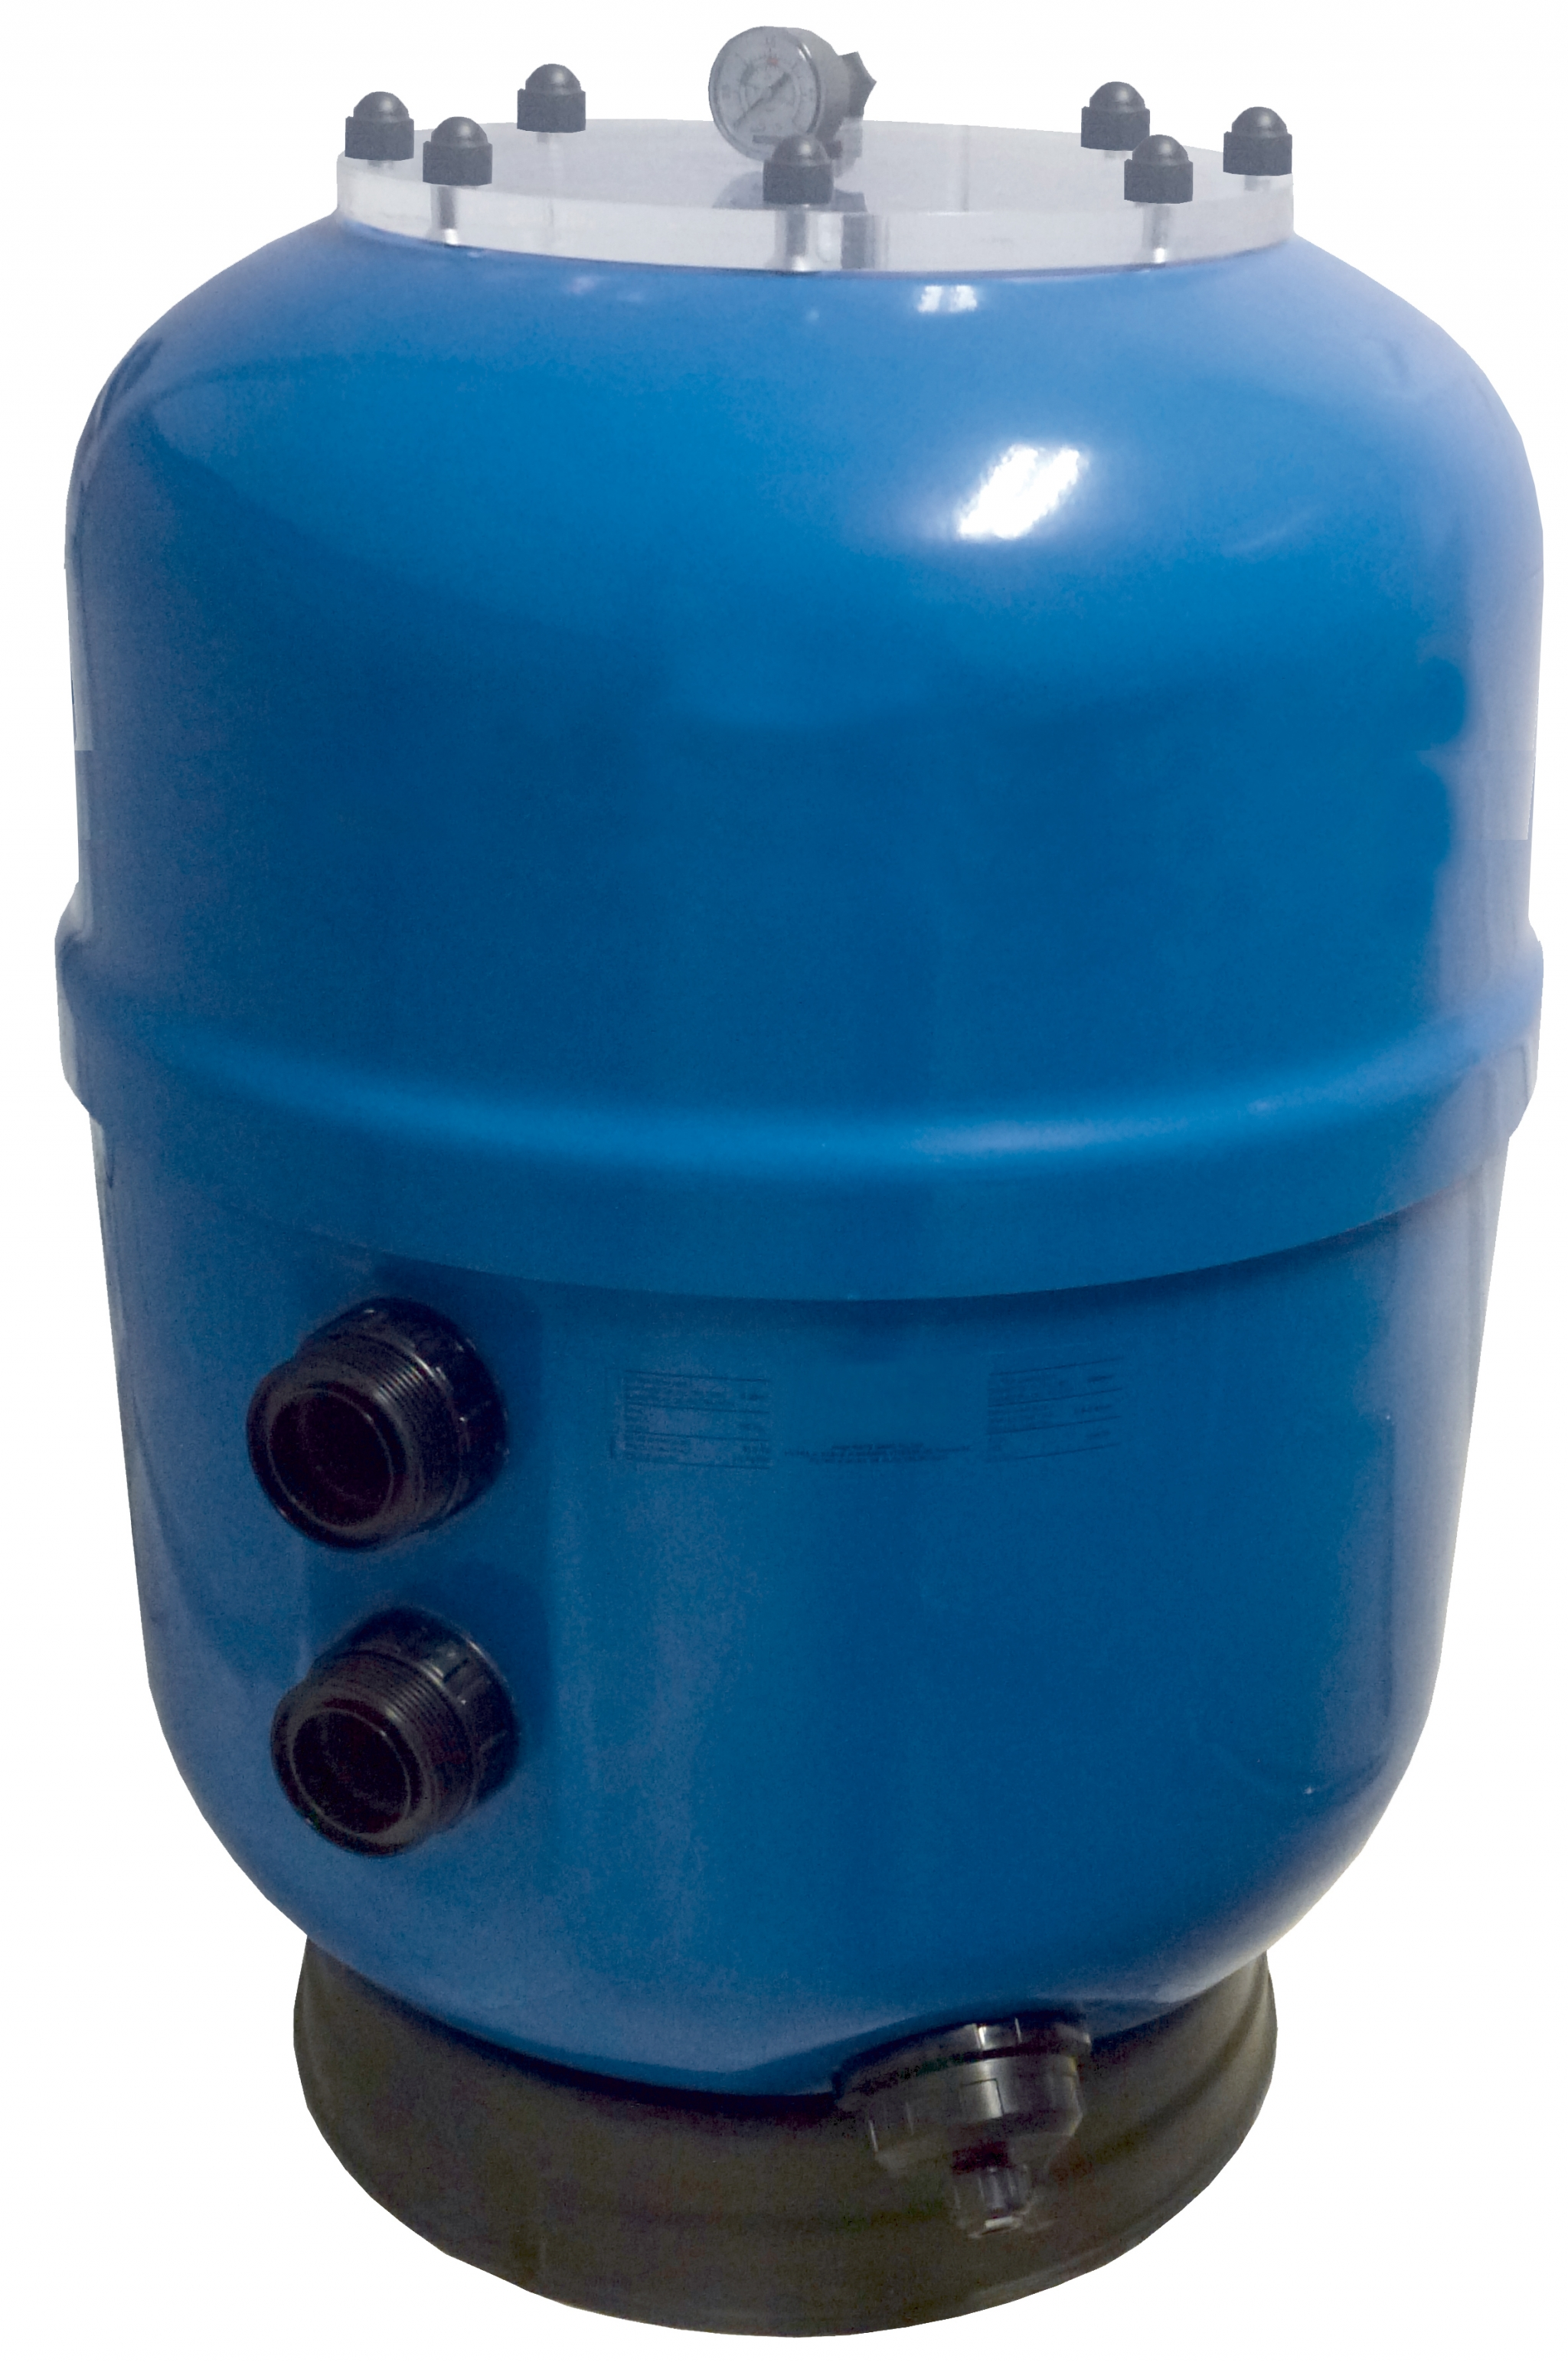 Europe pro long filters astralpool for Filtersand pool obi